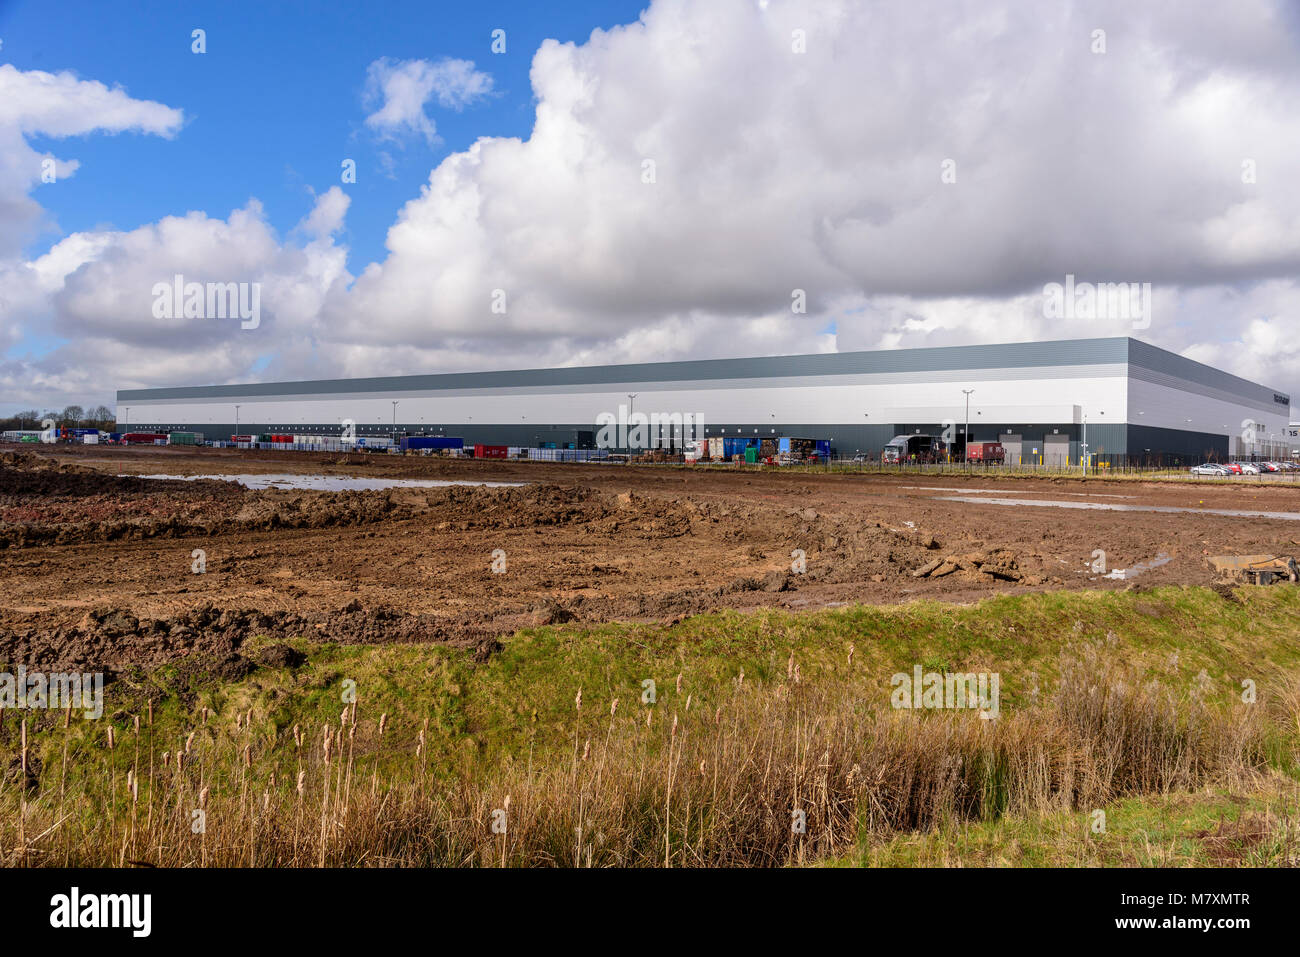 A massive The Hut distribution warehouse on the Omega development in Warrington. - Stock Image